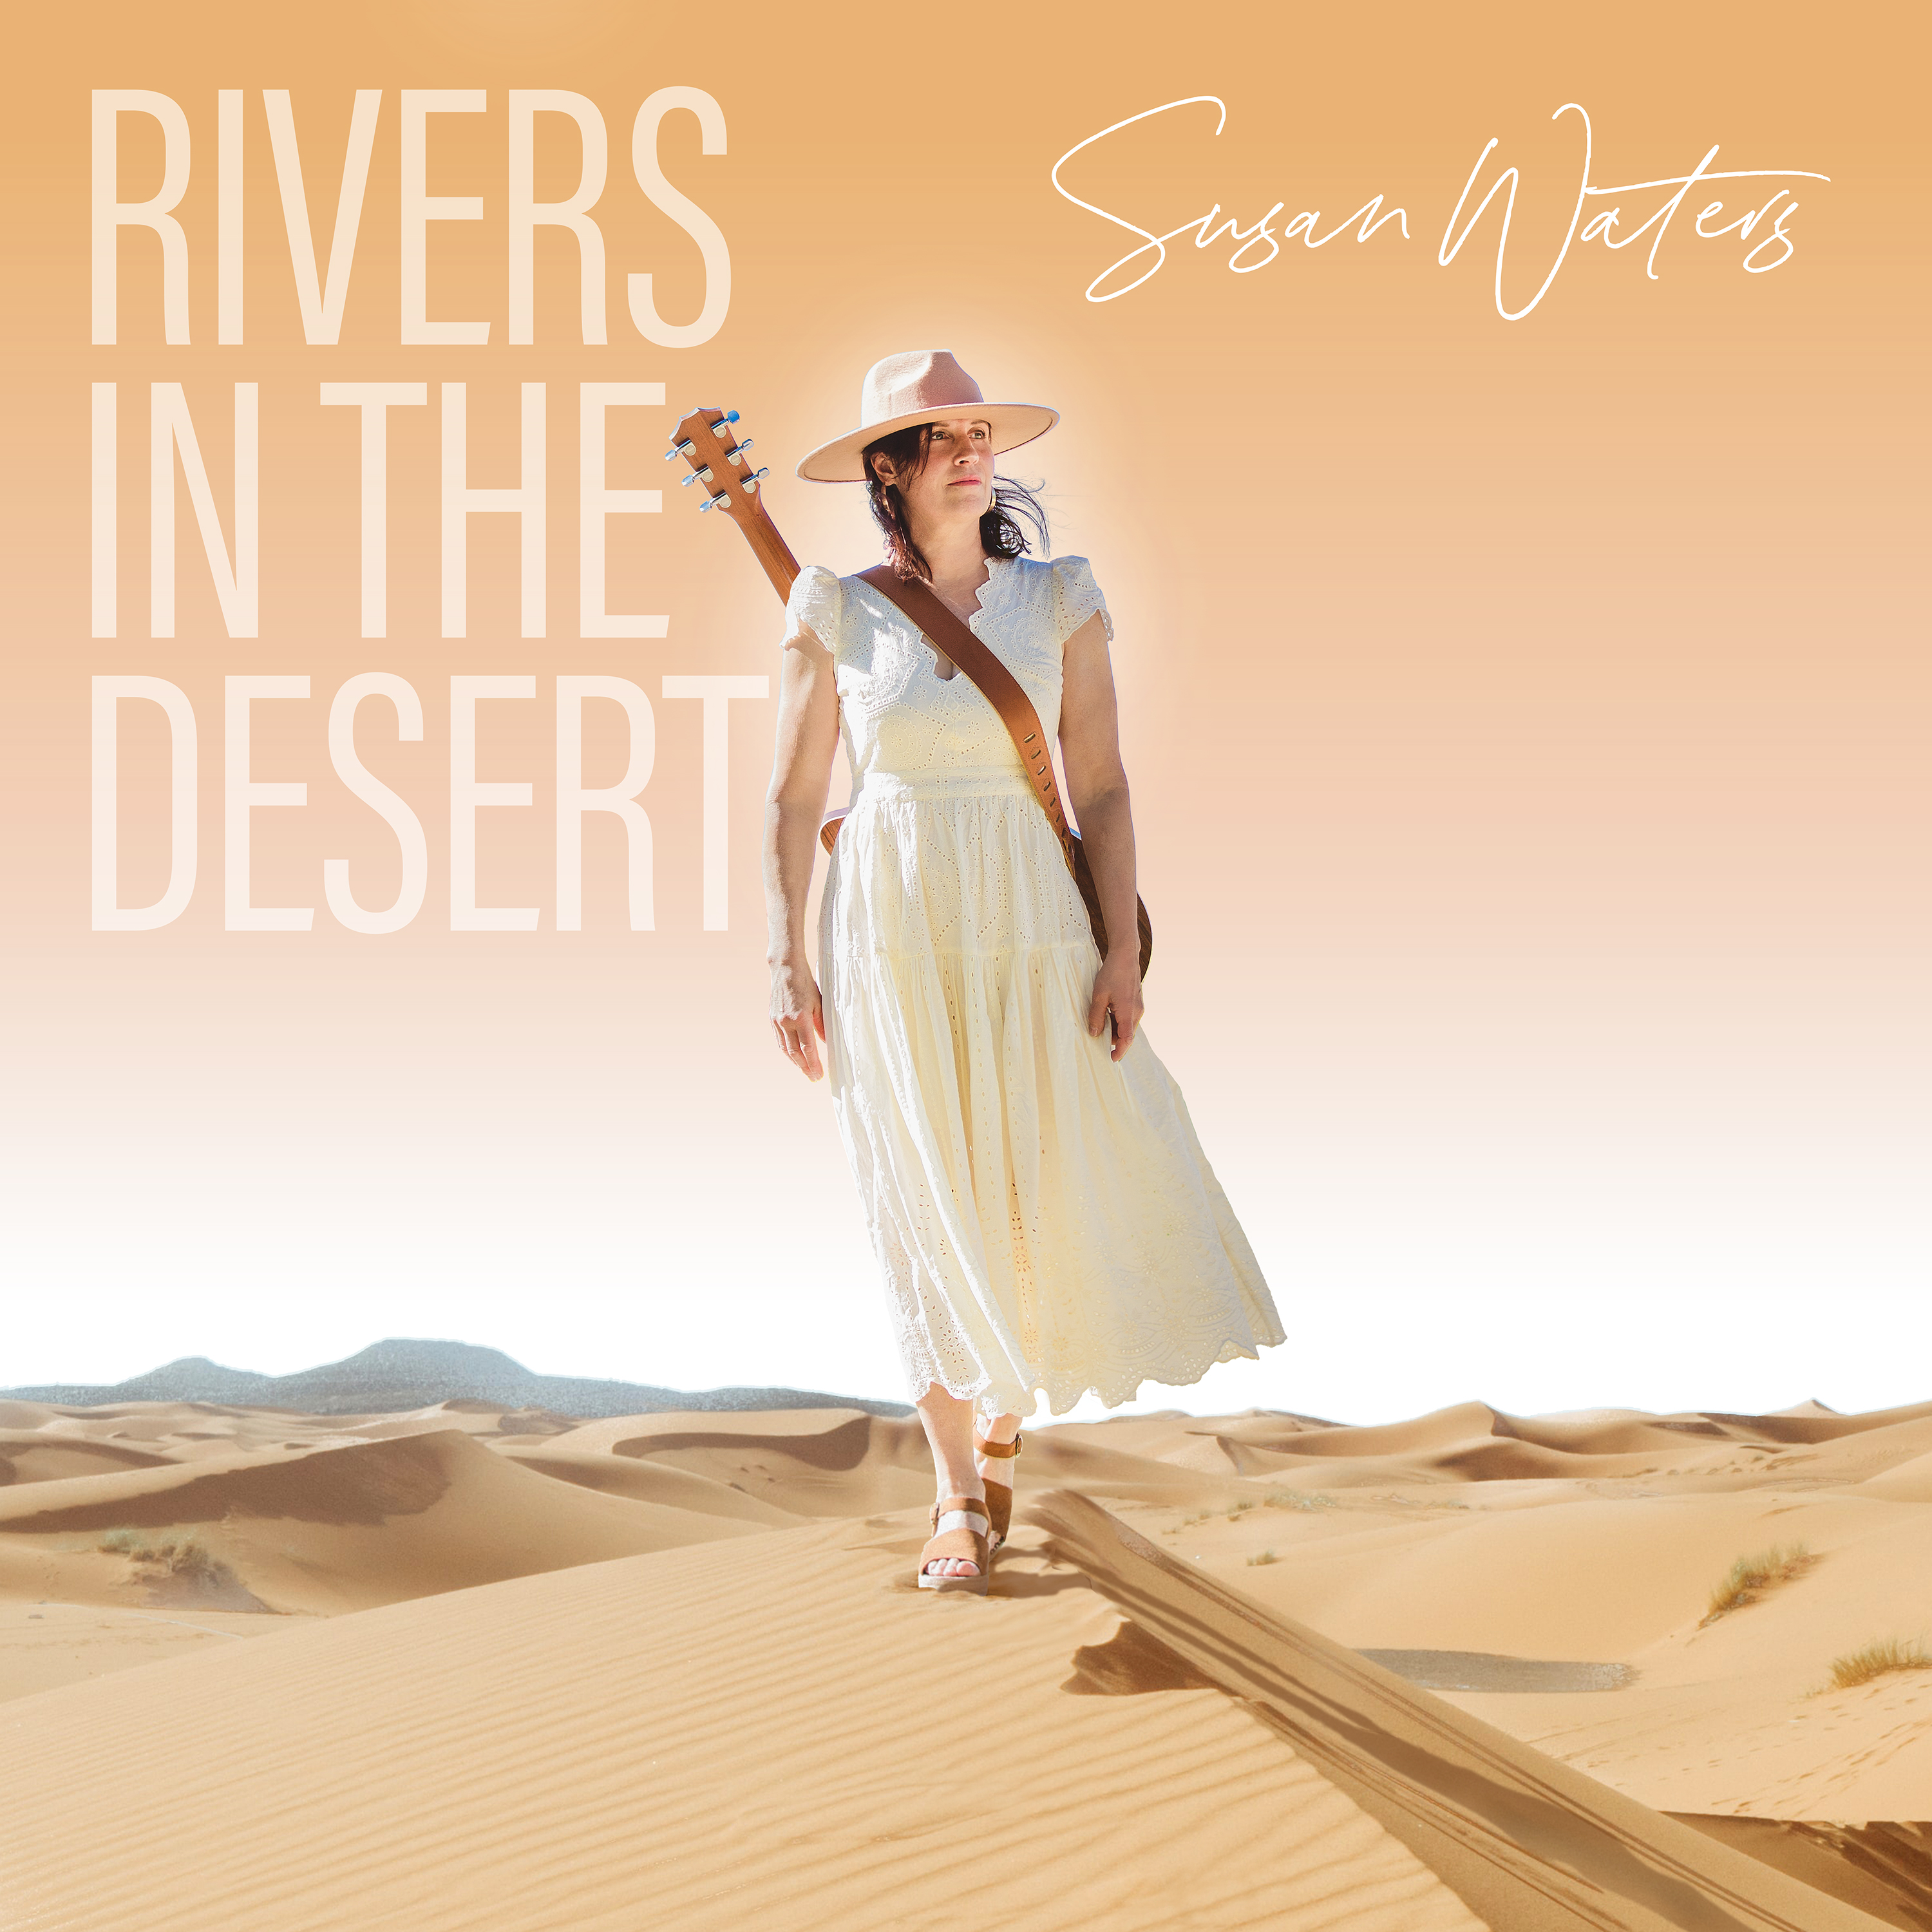 SusanWaters single RiversInTheDesert 3000